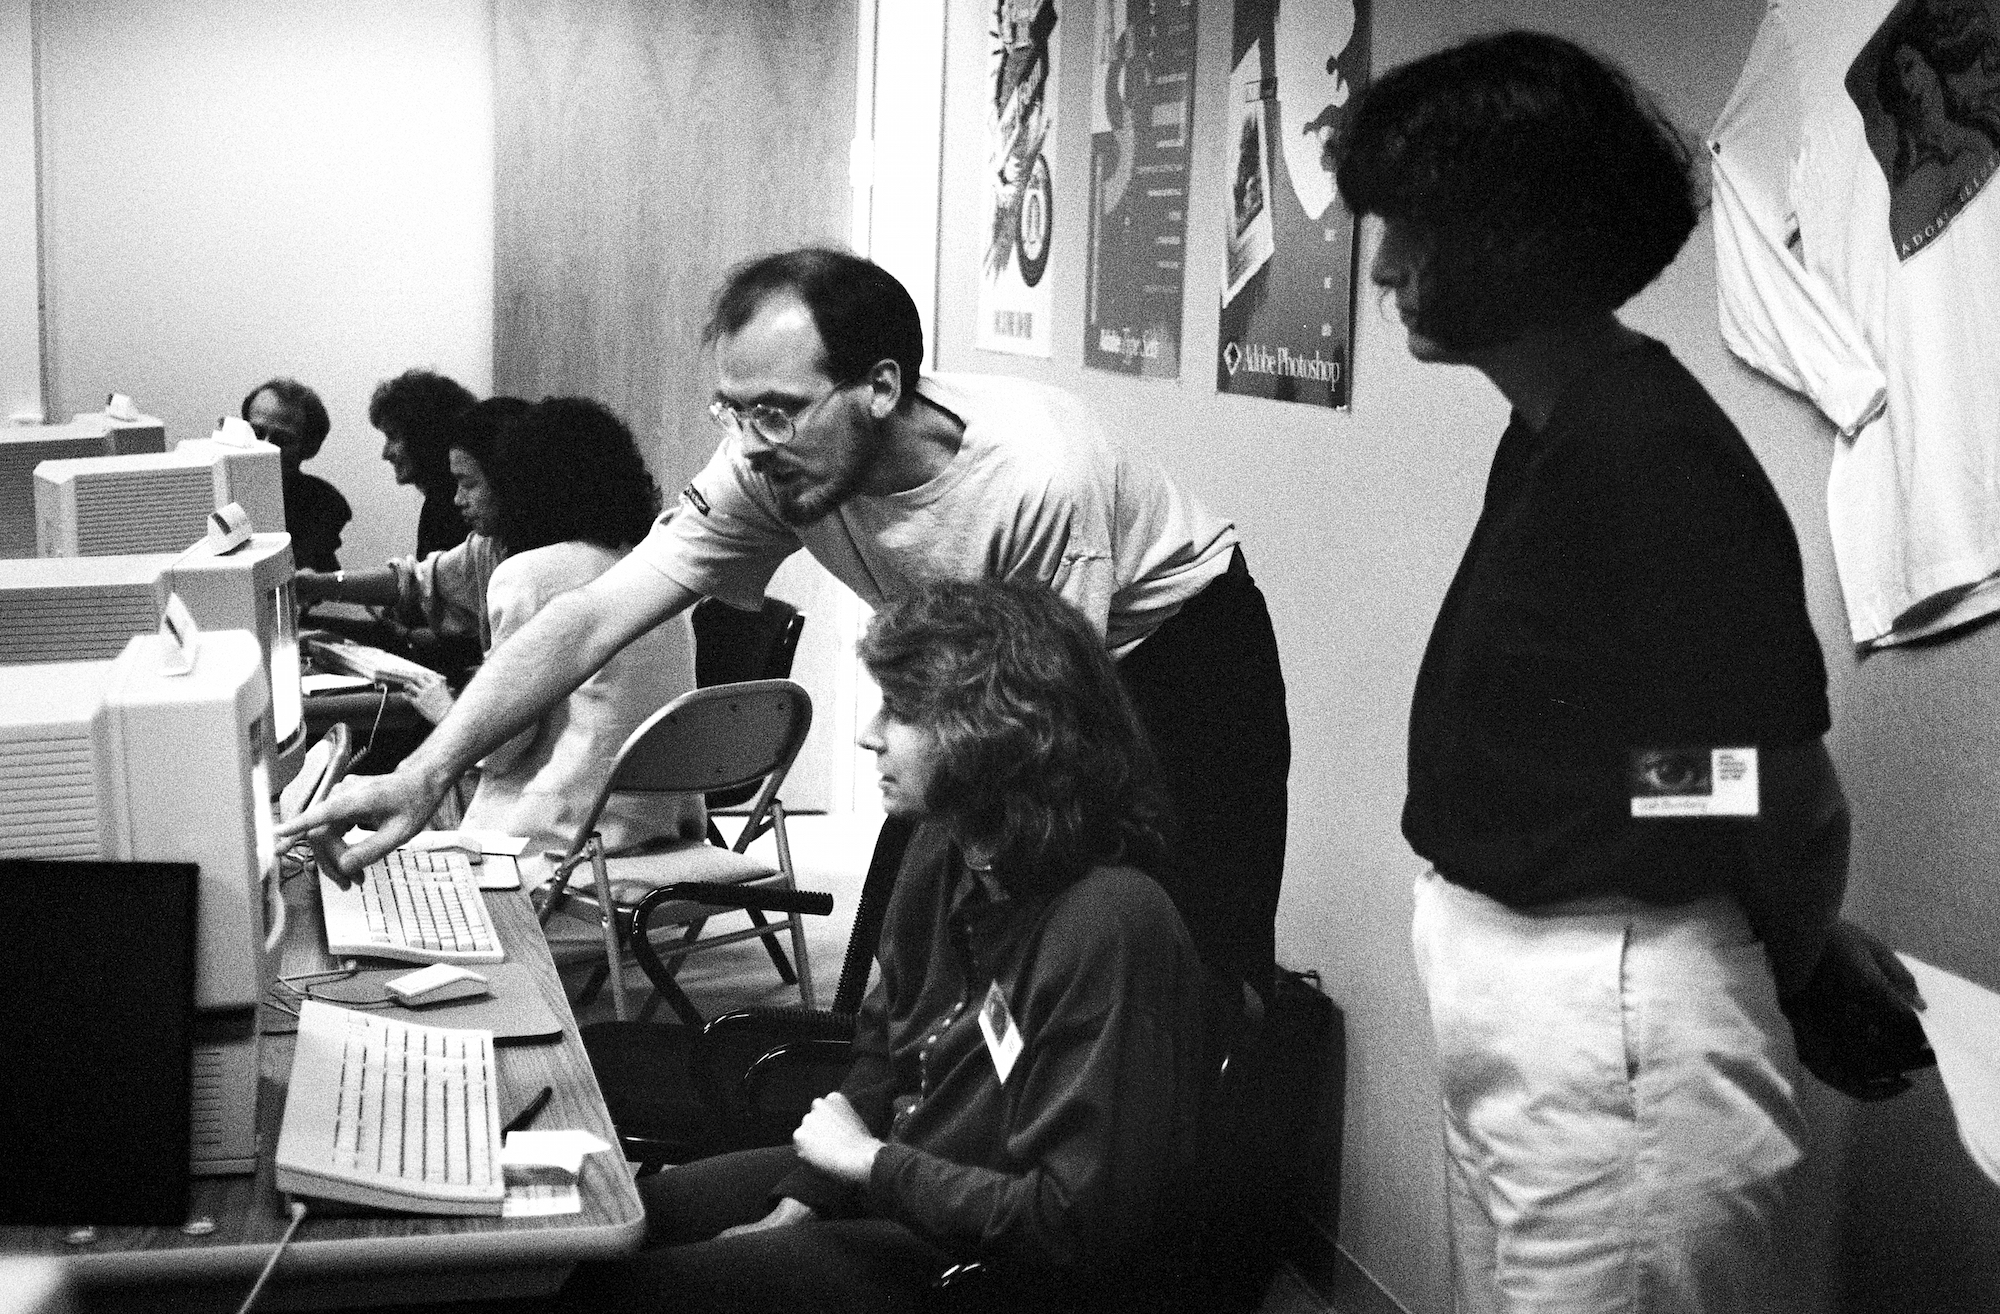 Russell Brown, Adobe creative director, and attendees of Adobe's 1990 Photoshop Invitational, 1990